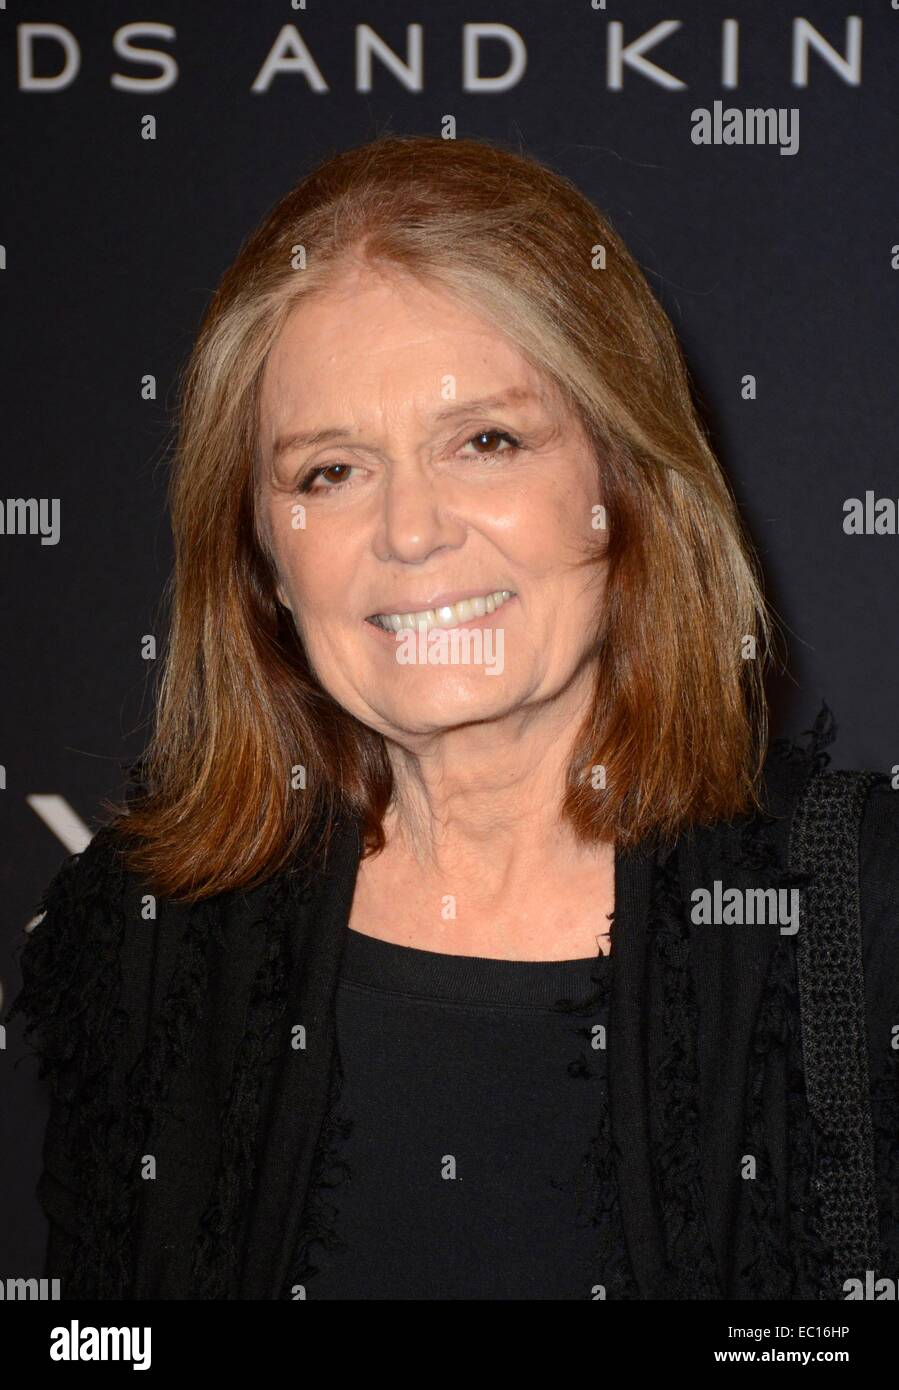 Brooklyn, NY, USA. 7th Dec, 2014. Gloria Steinem at arrivals for EXODUS: GODS AND KINGS Premiere, The Brooklyn Museum, - Stock Image